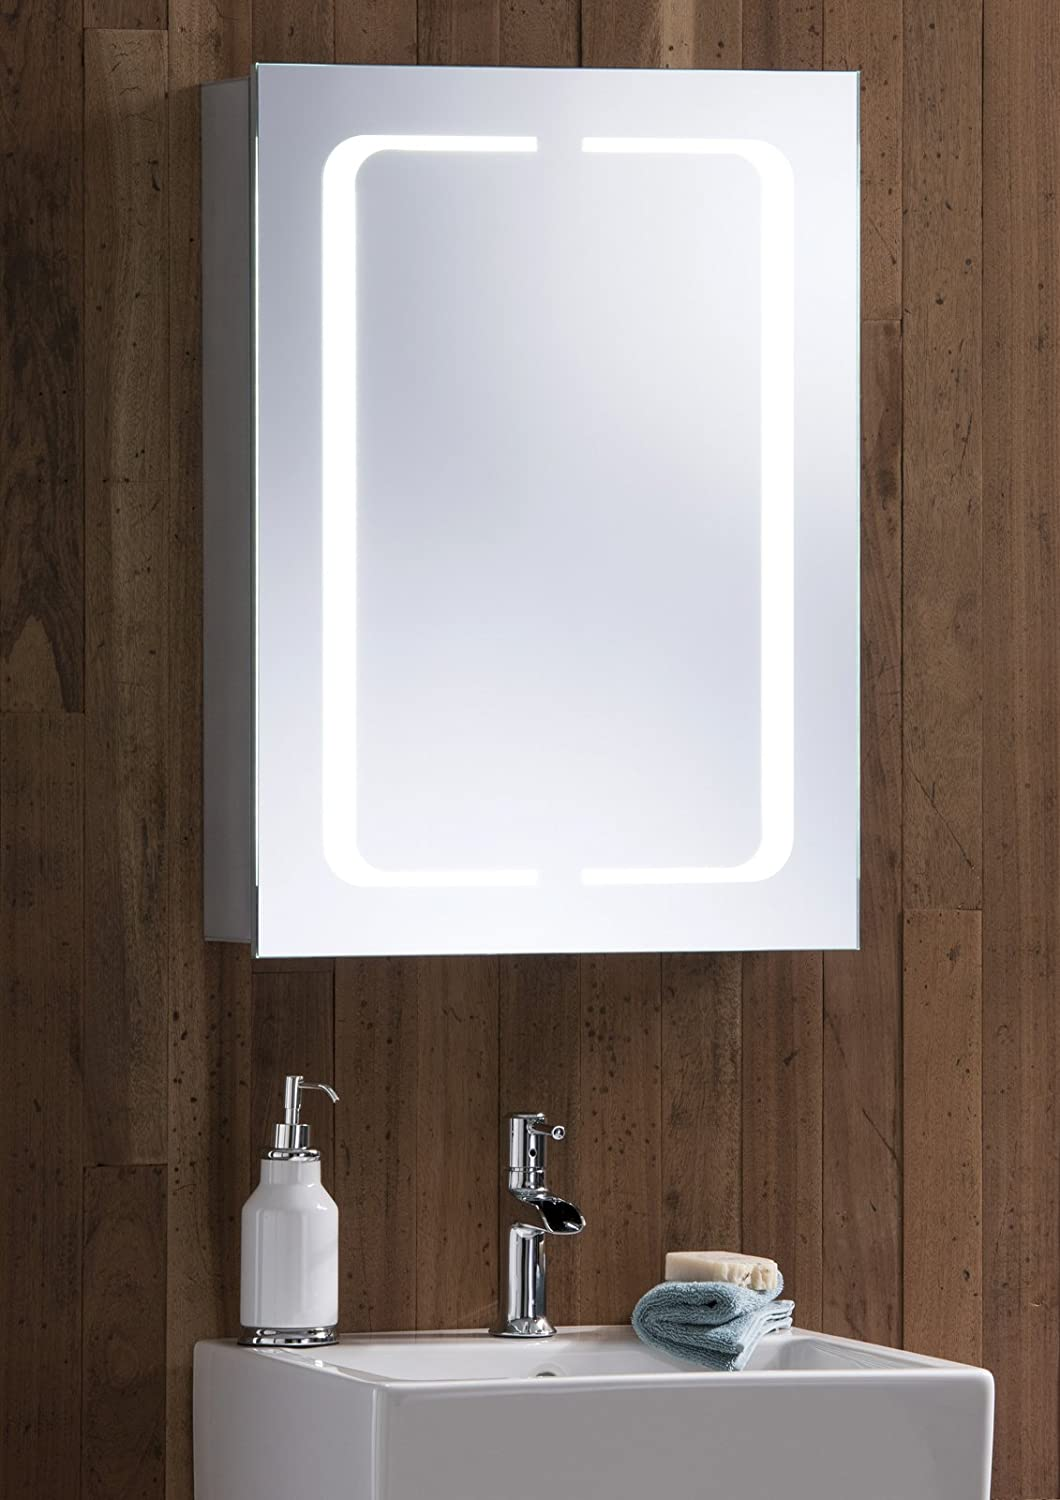 60 Led Demister Illuminated Bathroom Cabinet Mirror With Shaver Socket